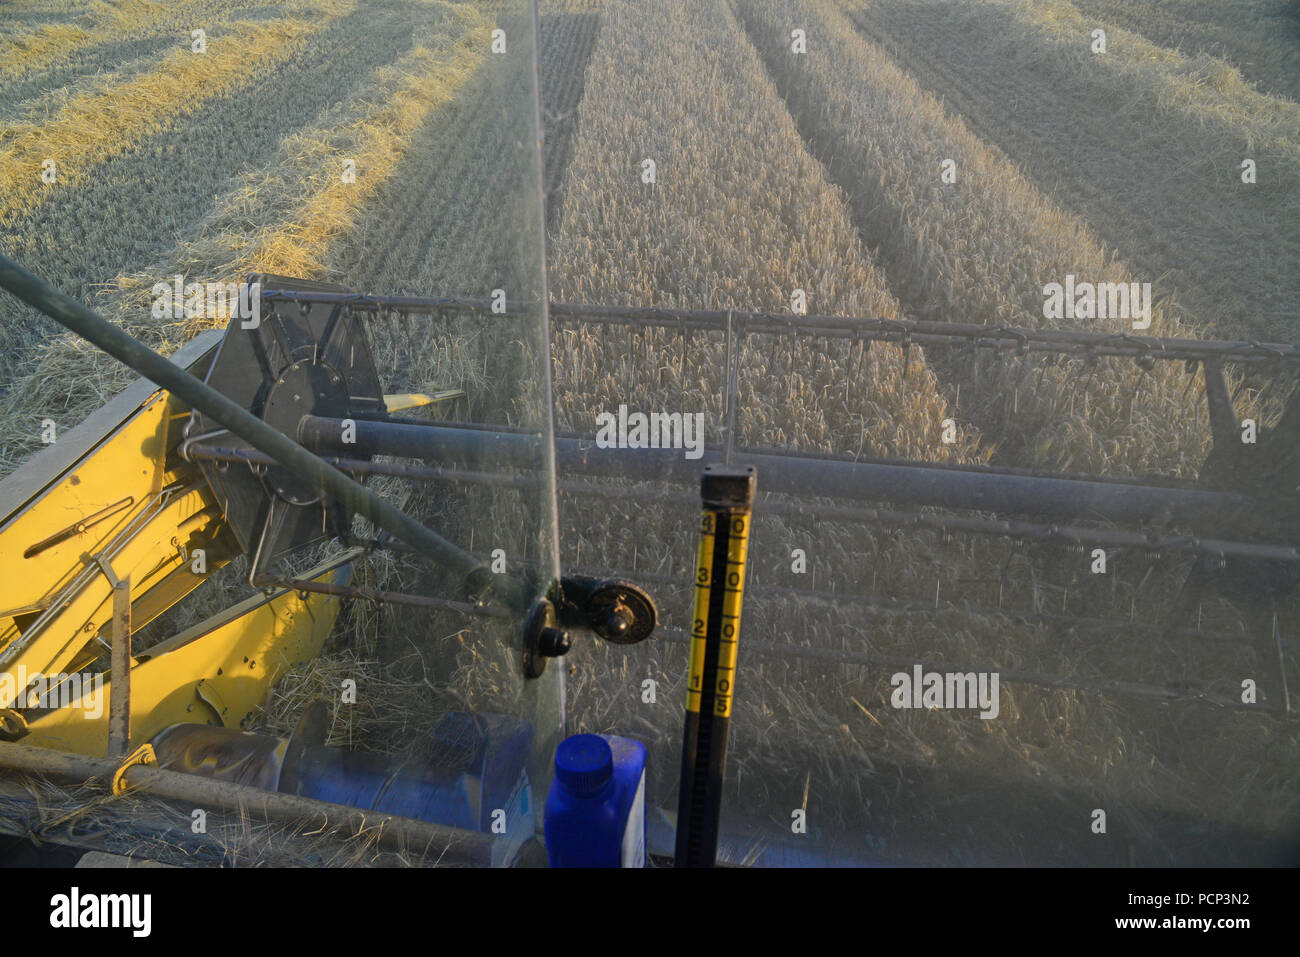 farmers eye view of cutter bar and reel threshing barley on combine harvester in field ellerton yorkshire united kingdom - Stock Image